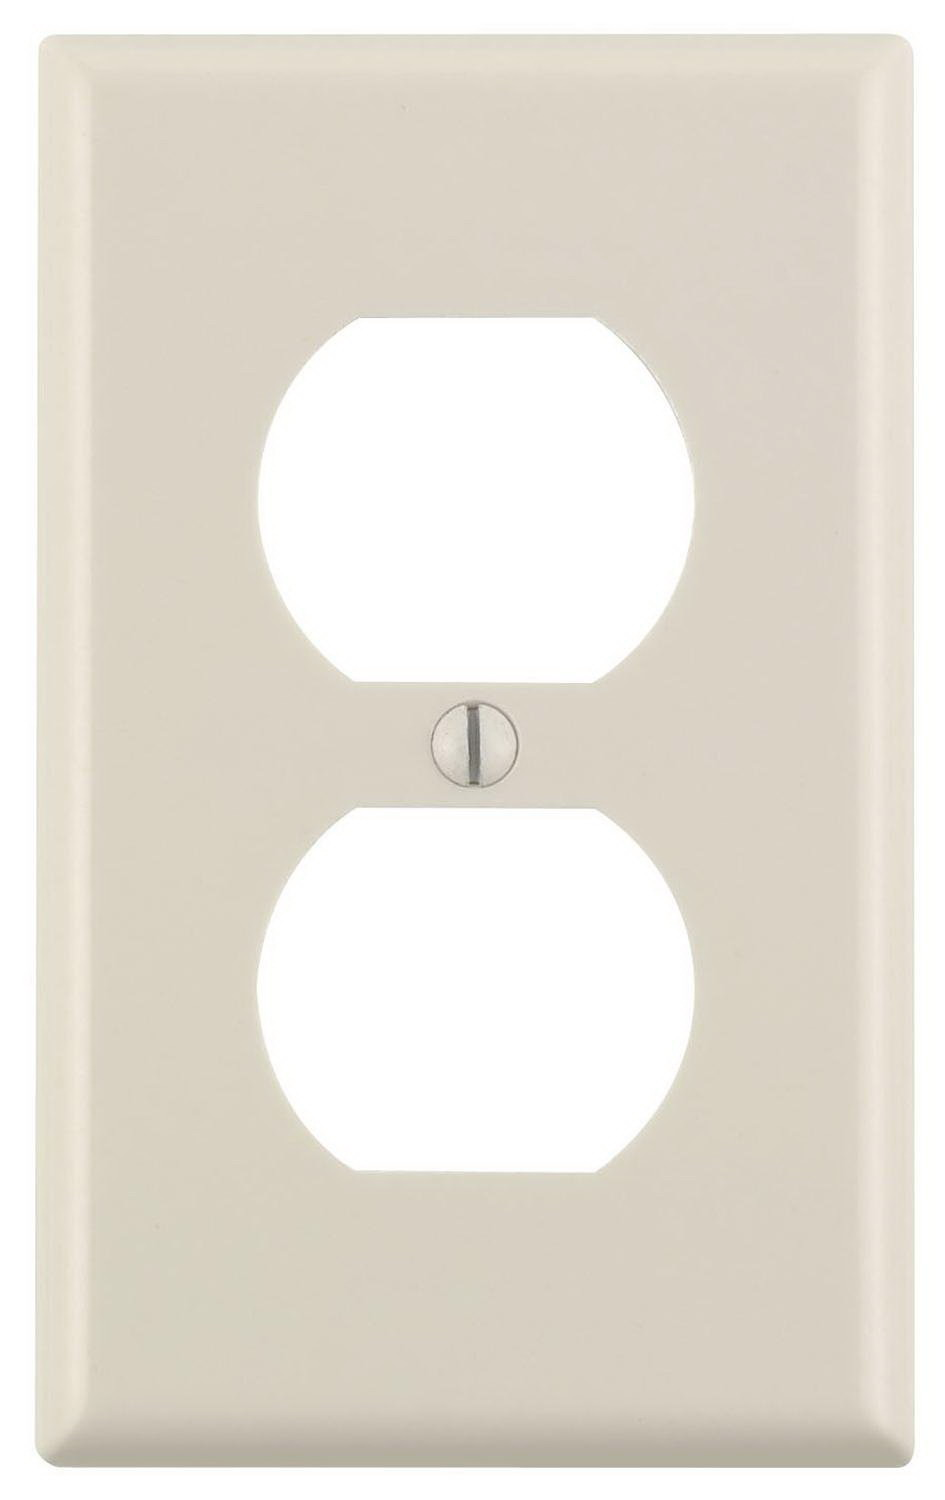 Leviton M56-78003-TMP 1-Duplex Receptacle Standard Size Wall Plate, 1 Gang, 4-1/2 in L X 2-3/4 in W 0.22 in T, Smooth